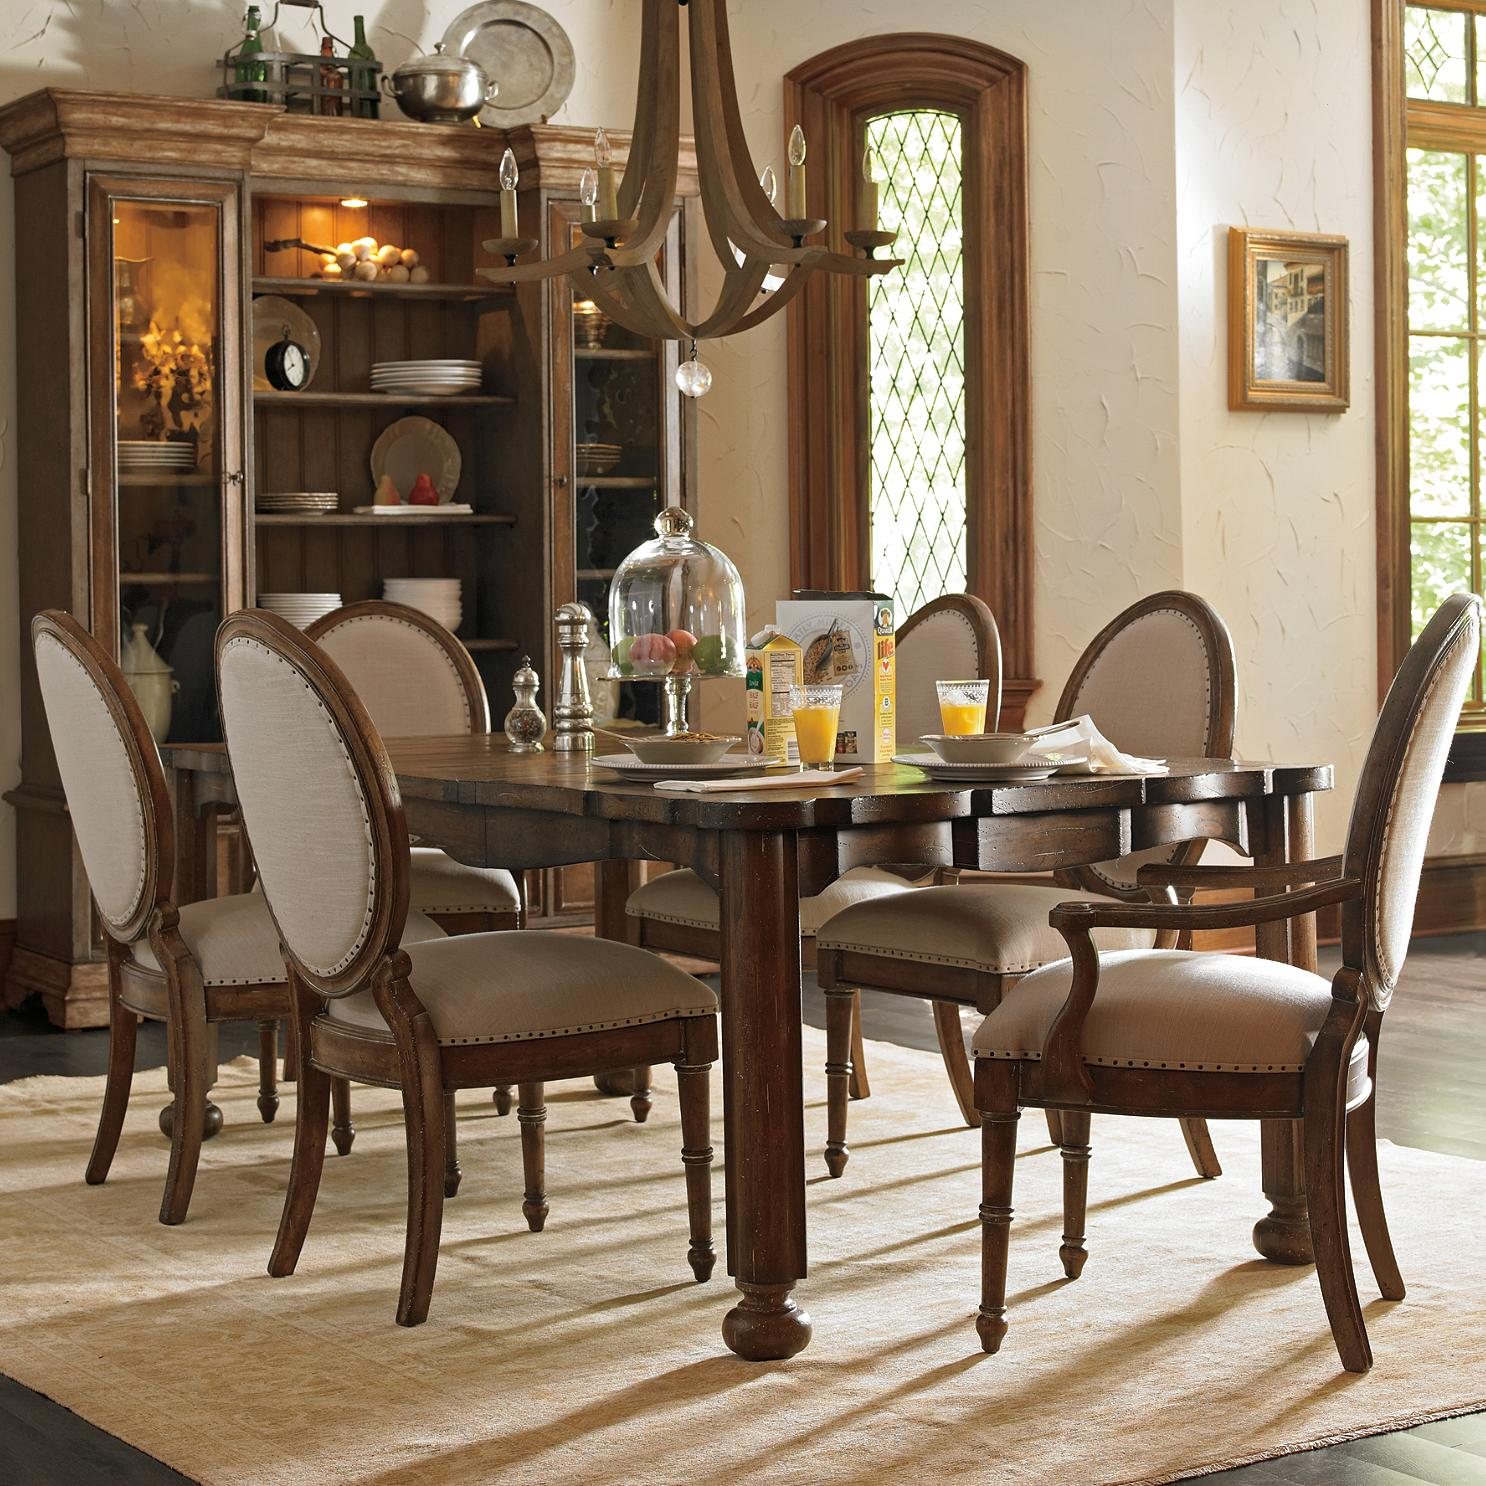 Stanley Furniture European Farmhouse 7 Piece Farmeru0027s Market Table U0026  Million Stars Chairs Set   AHFA   Dining 7 (or More) Piece Set Dealer  Locator